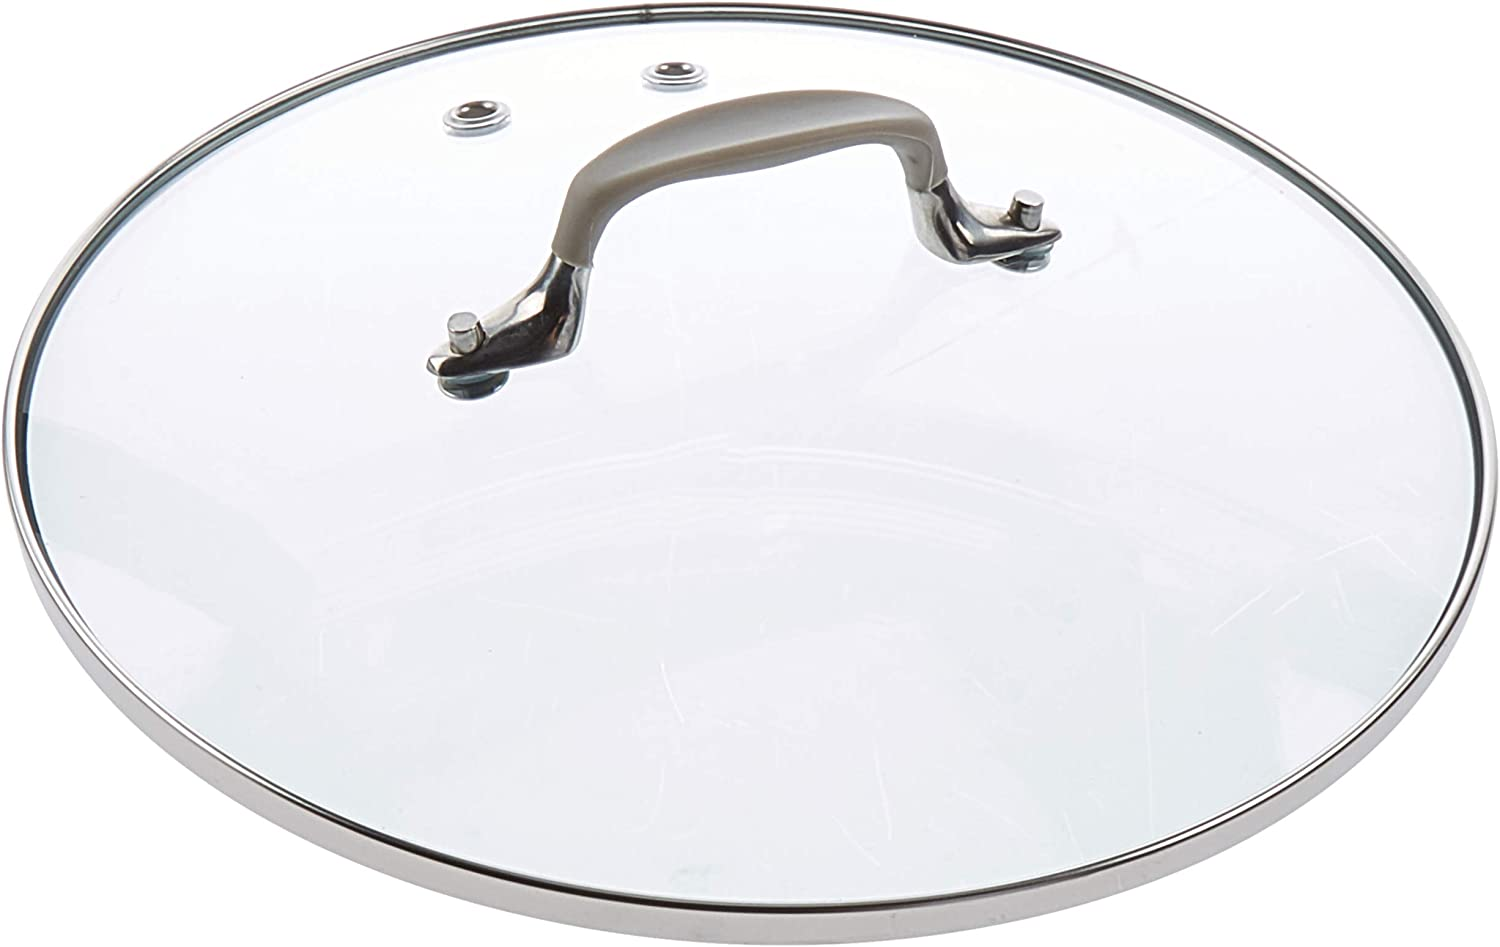 All-Clad Slow Cooker With Ceramic Black Insert Replacement Lid for SD710851, 4 quart, Glass